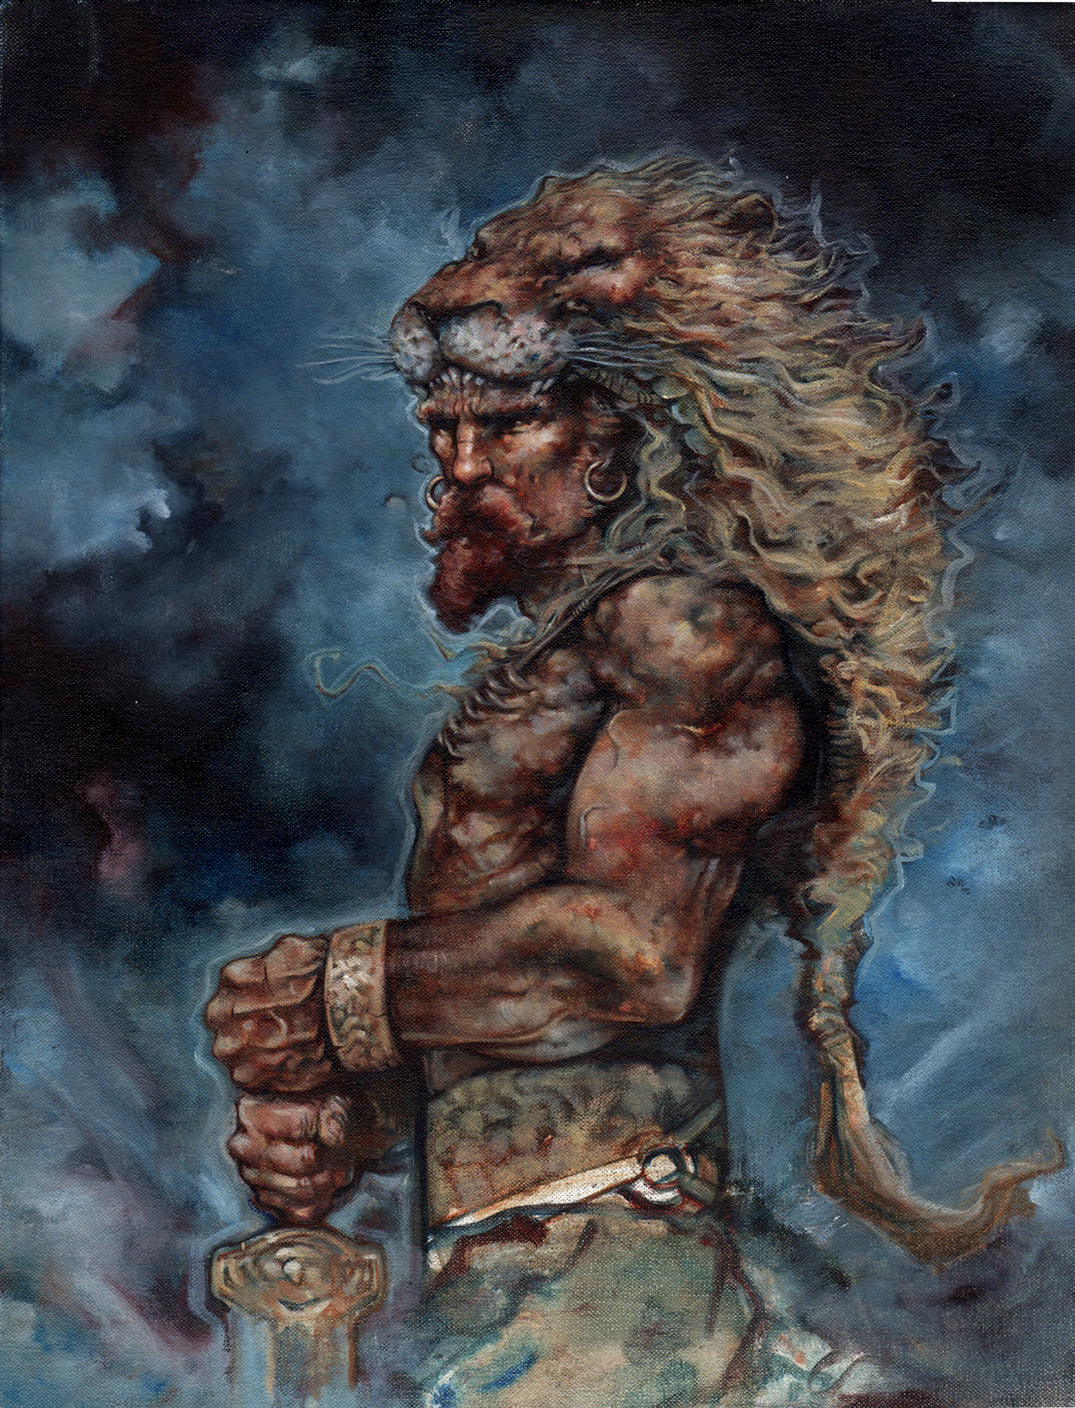 Hercules, Fantasy Artwork© Jeff Lafferty 2014